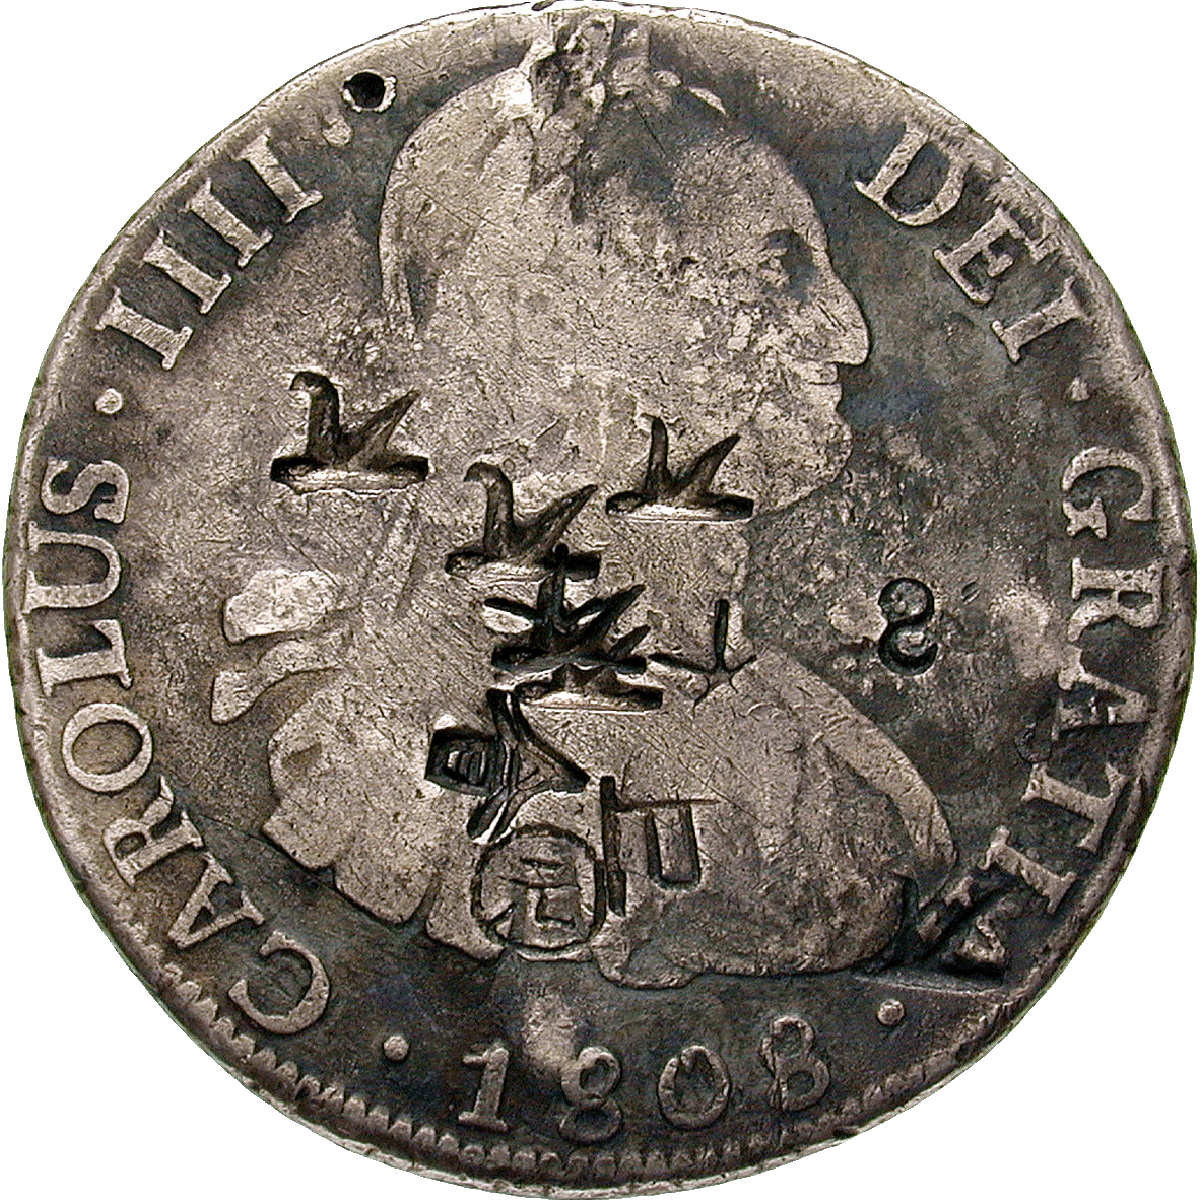 Chinese Empire, Charles III. of Spain, Real de a ocho (Peso) 1808 with Chinese Countermarks (obverse)